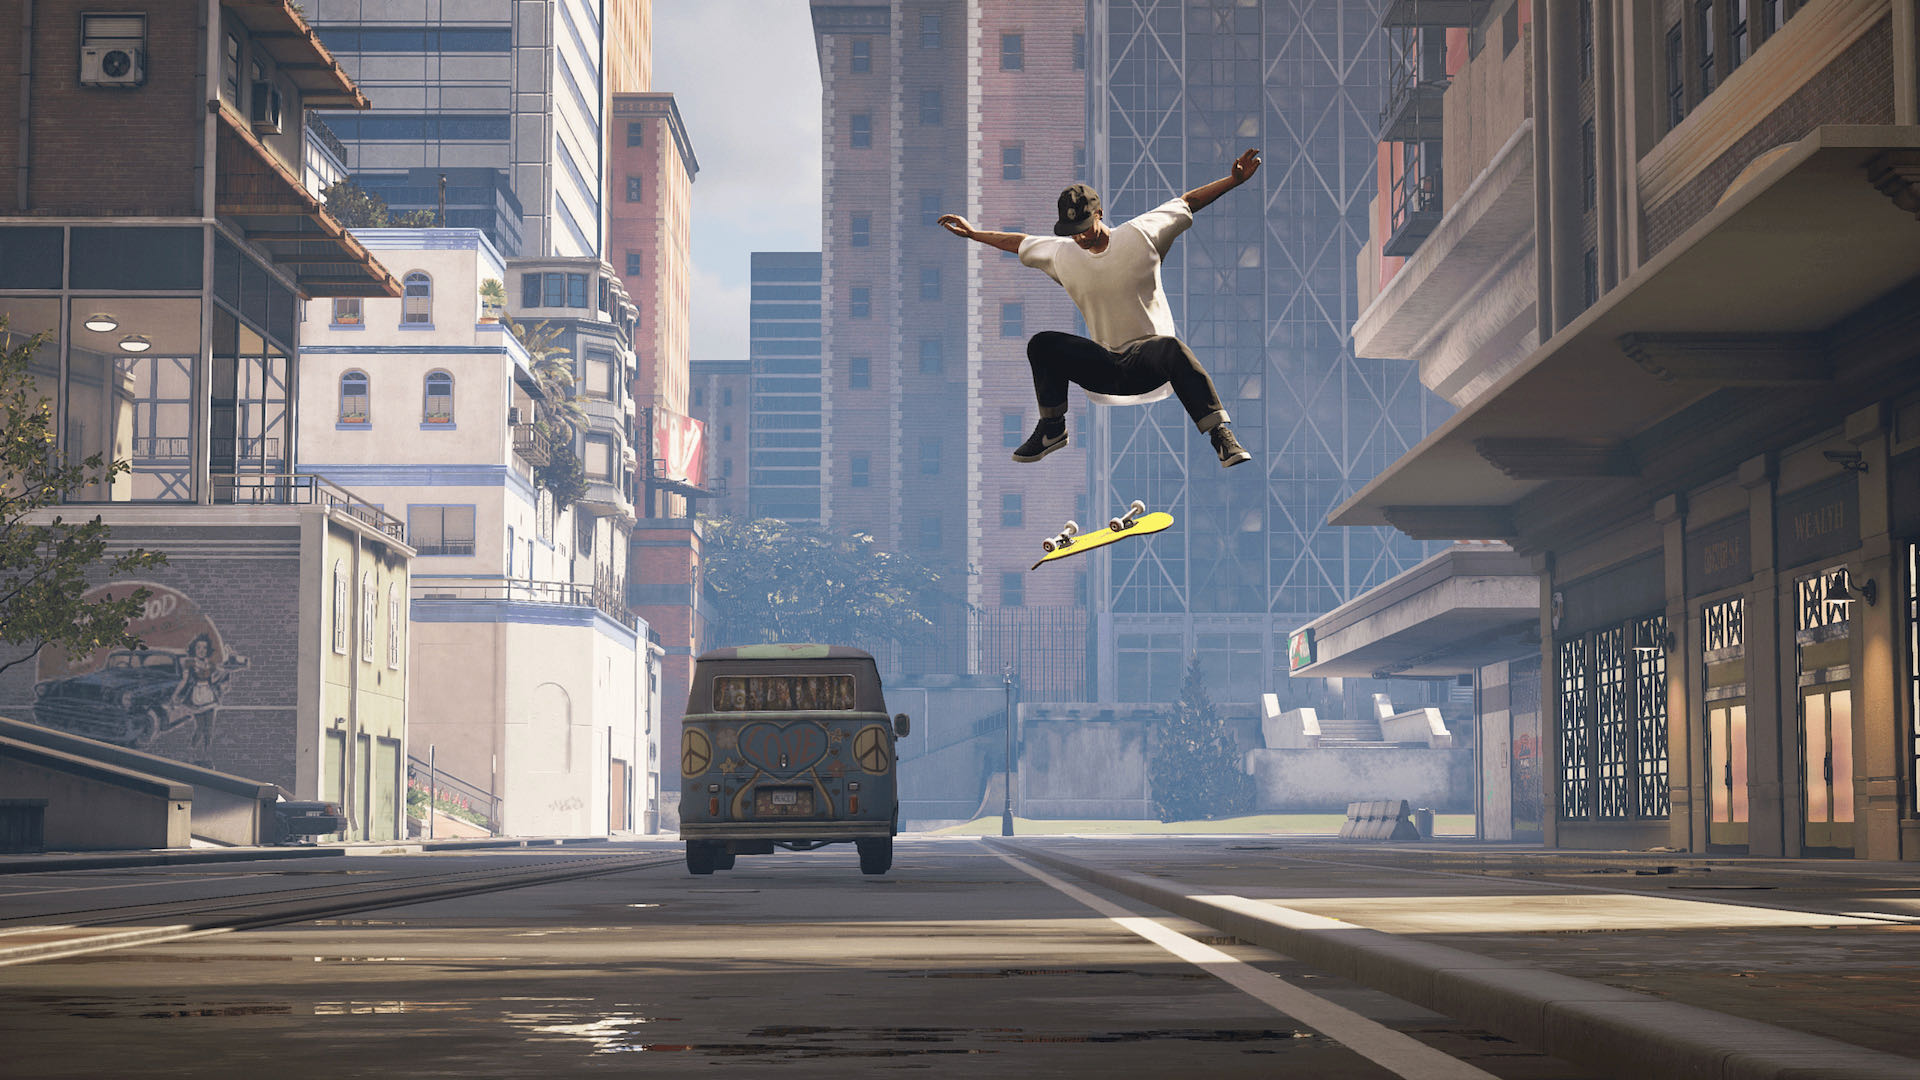 A screenshot from THPS, your skater doing a flip trick into the street.